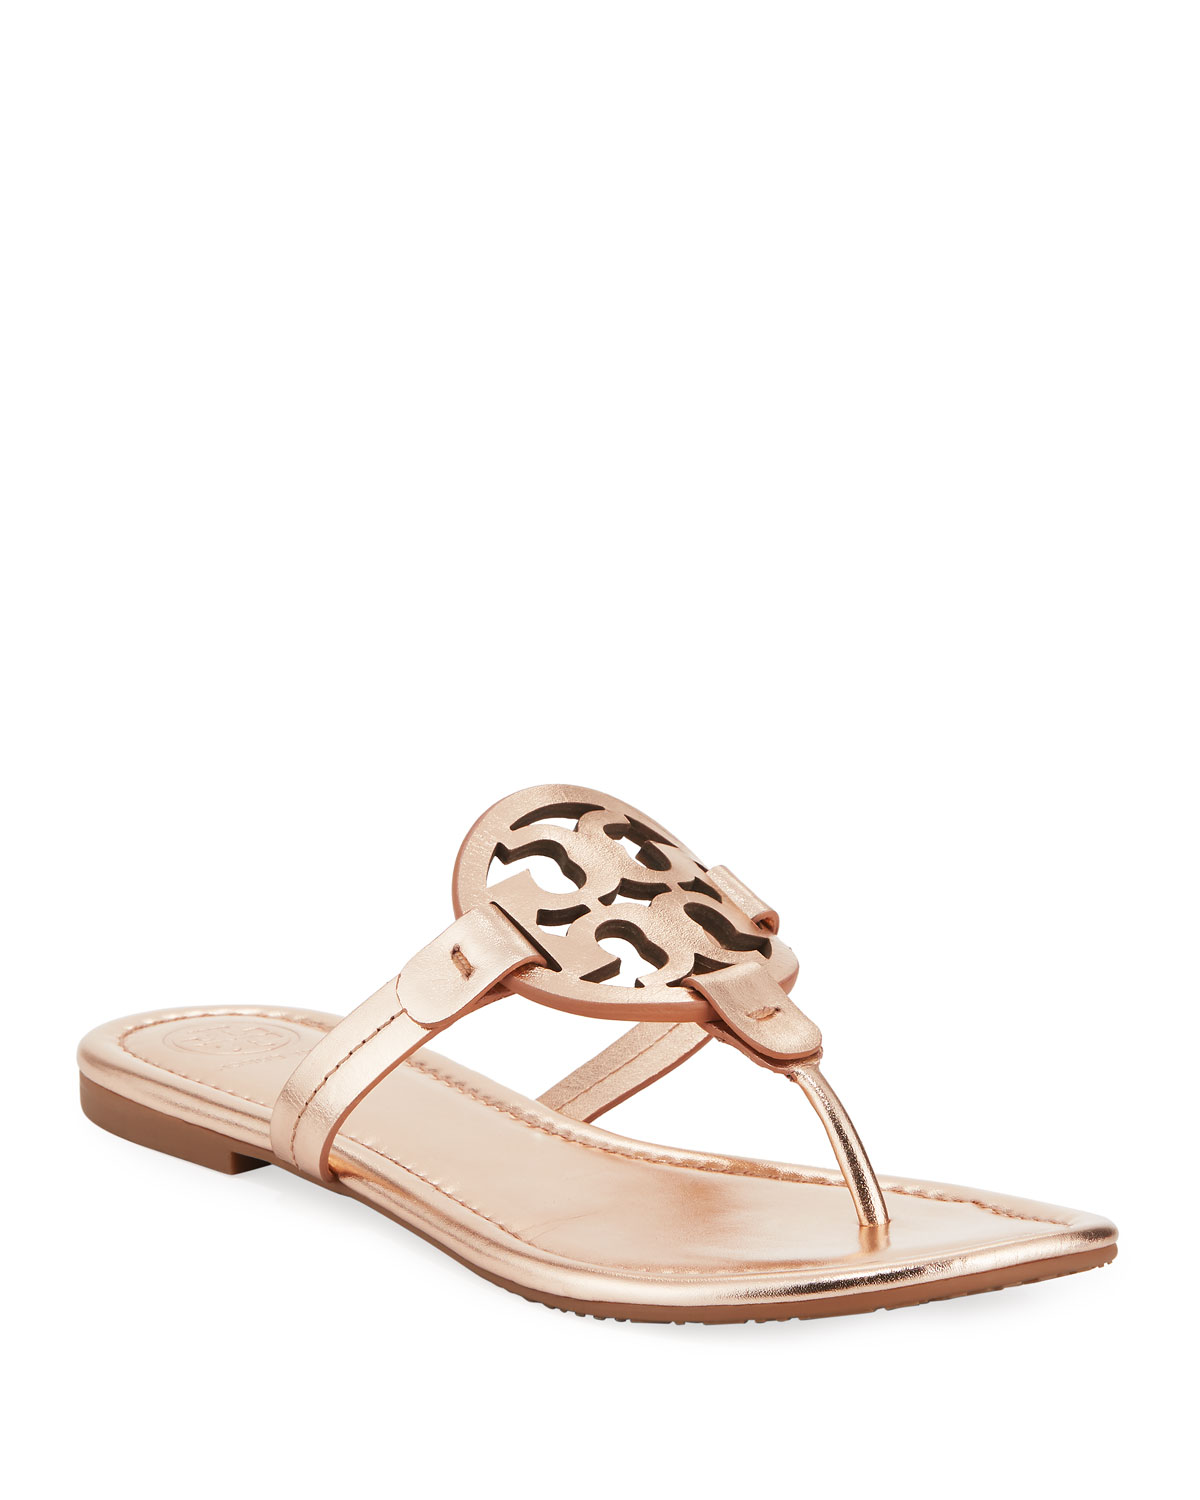 c74a389616d Tory Burch Miller Medallion Metallic Leather Flat Slide Sandal ...